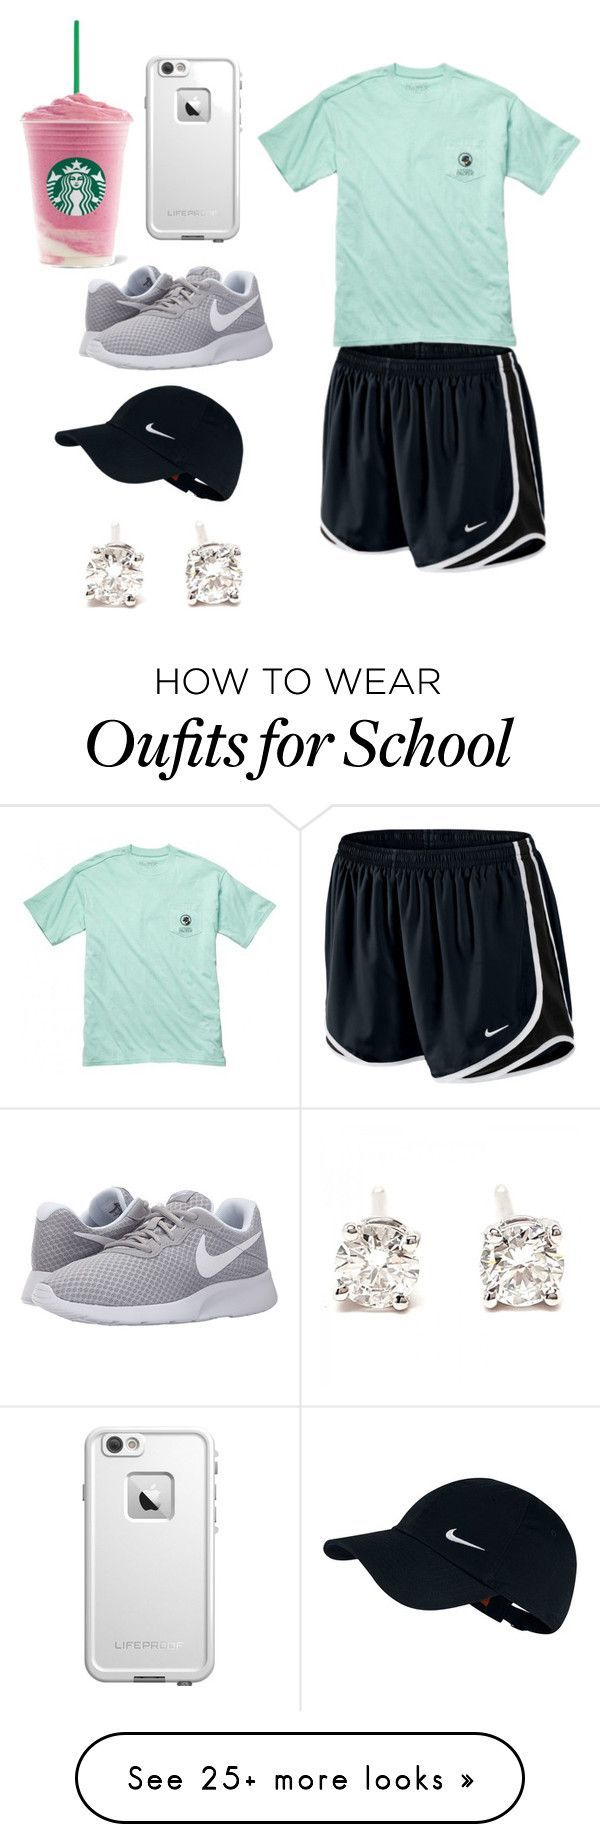 to wear - Summer cute outfits for school dresses photo video